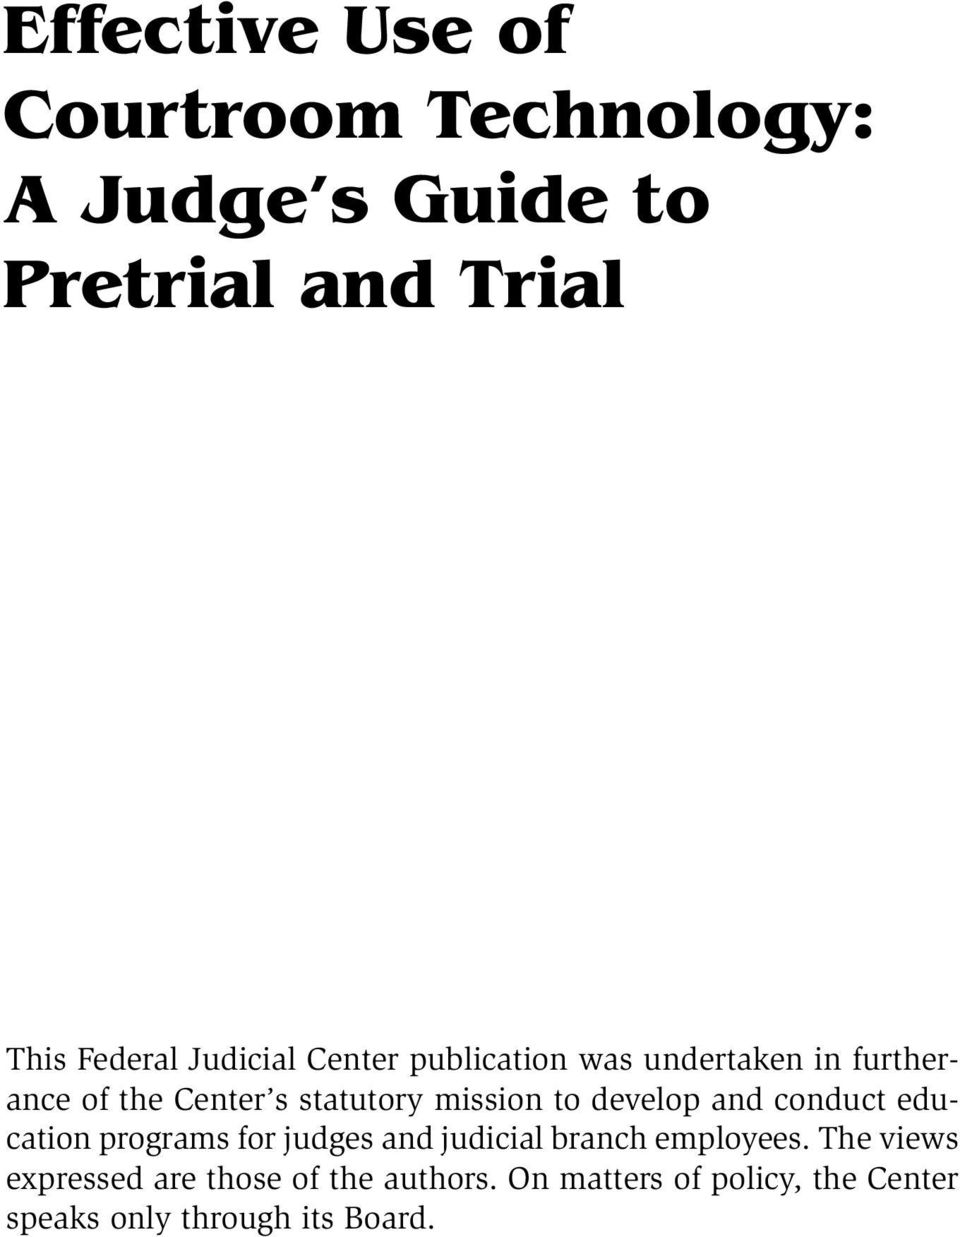 to develop and conduct education programs for judges and judicial branch employees.